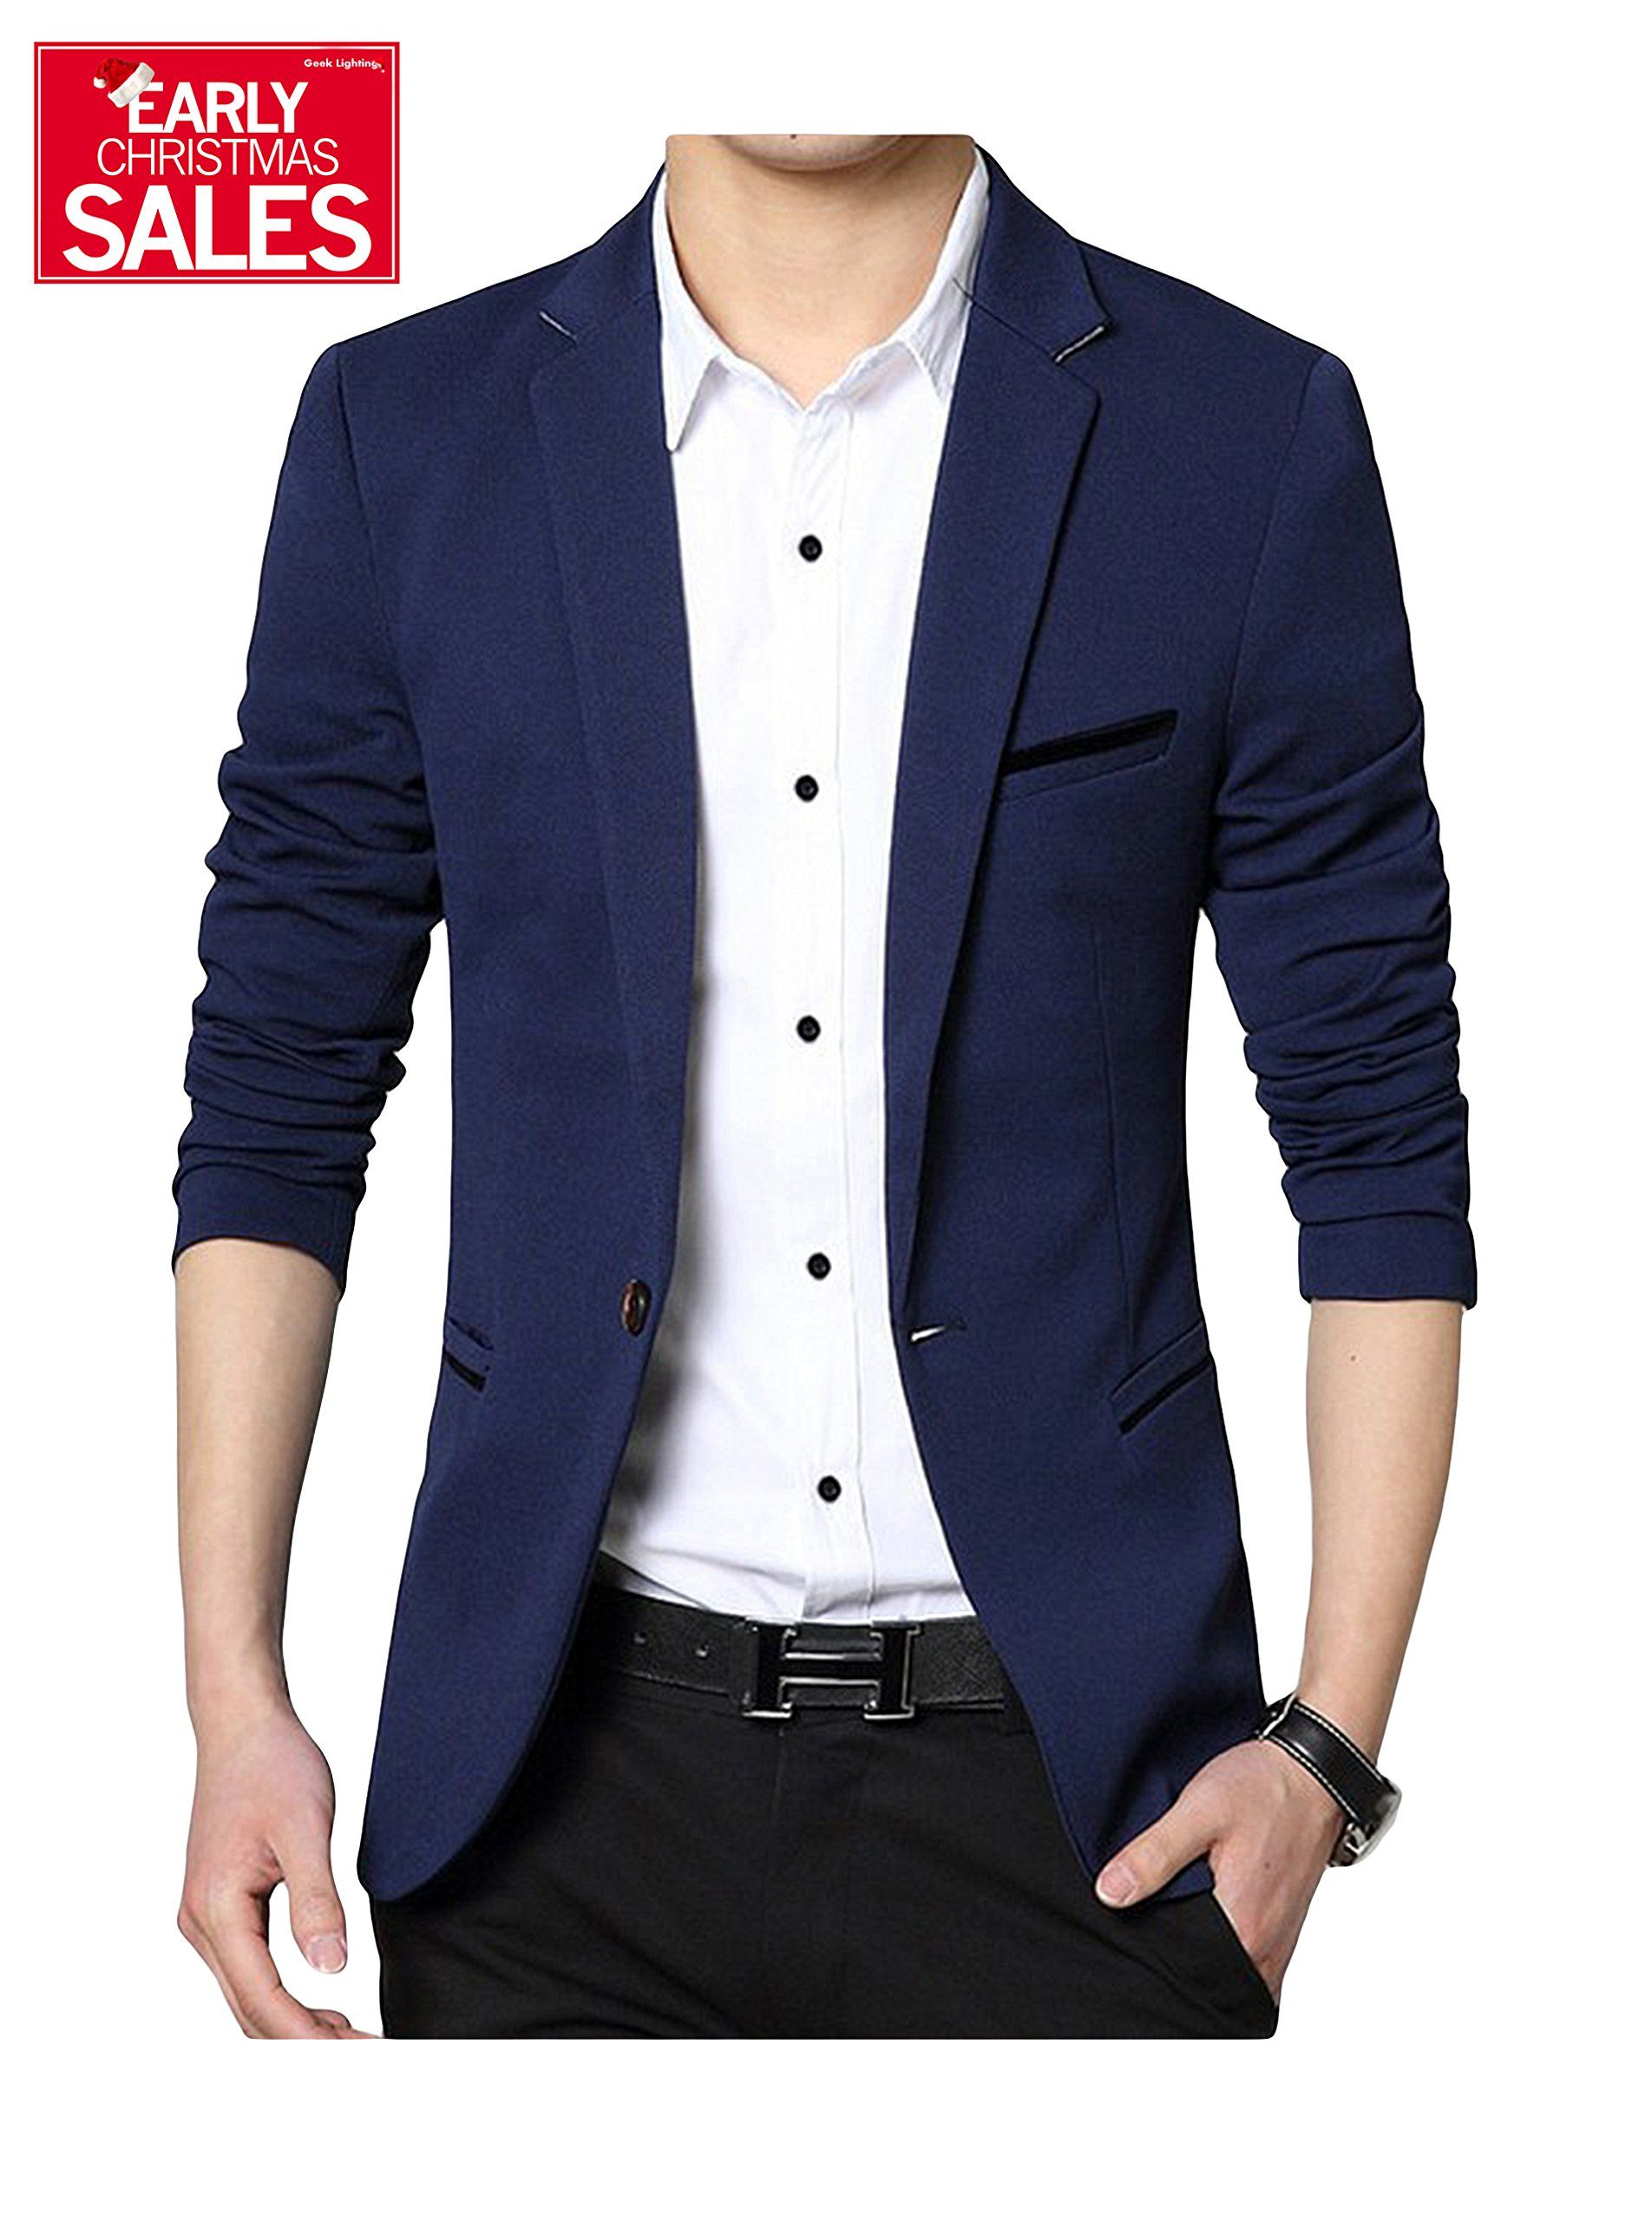 c4e23c476d8 Men s Slim Fit Casual One Button Formal Suit Blazer Coat Jacket Navy US  X-Small